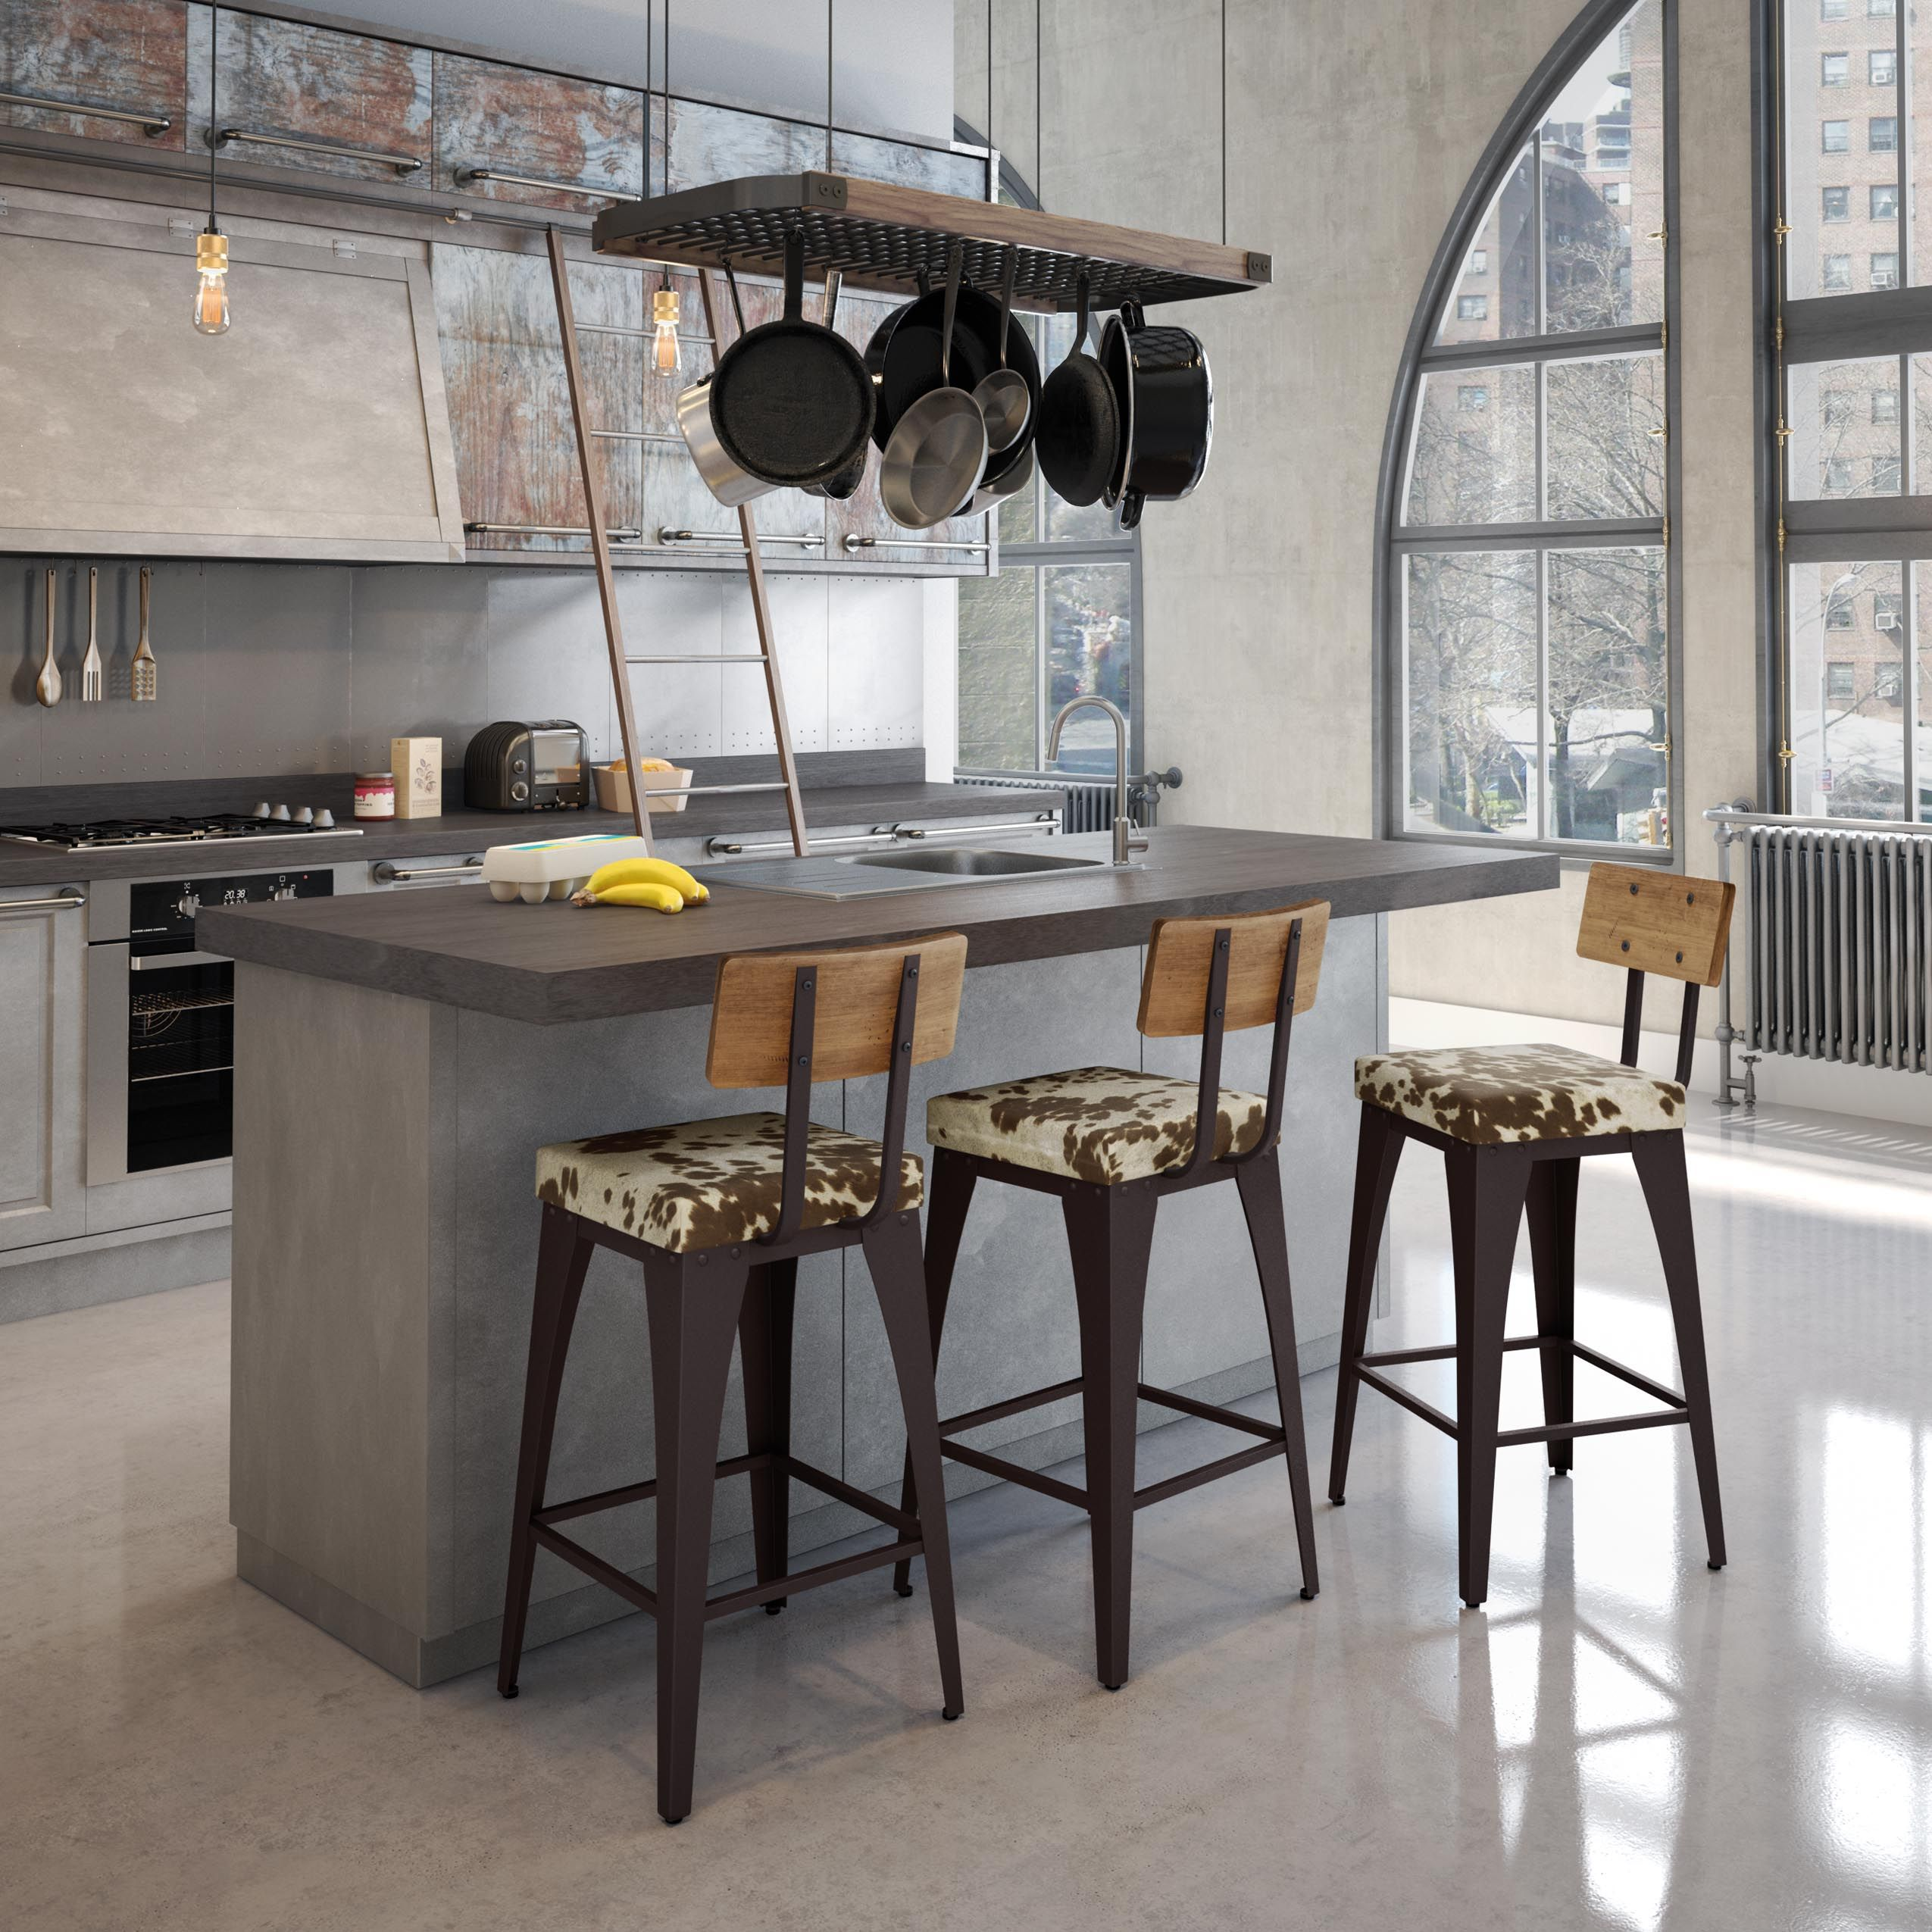 AMISCO - Upright Stool - Furniture - Kitchen - Industrial collection - Contemporary - Non swivel stool & Inspired by factories from the industrial era influenced by a ... islam-shia.org